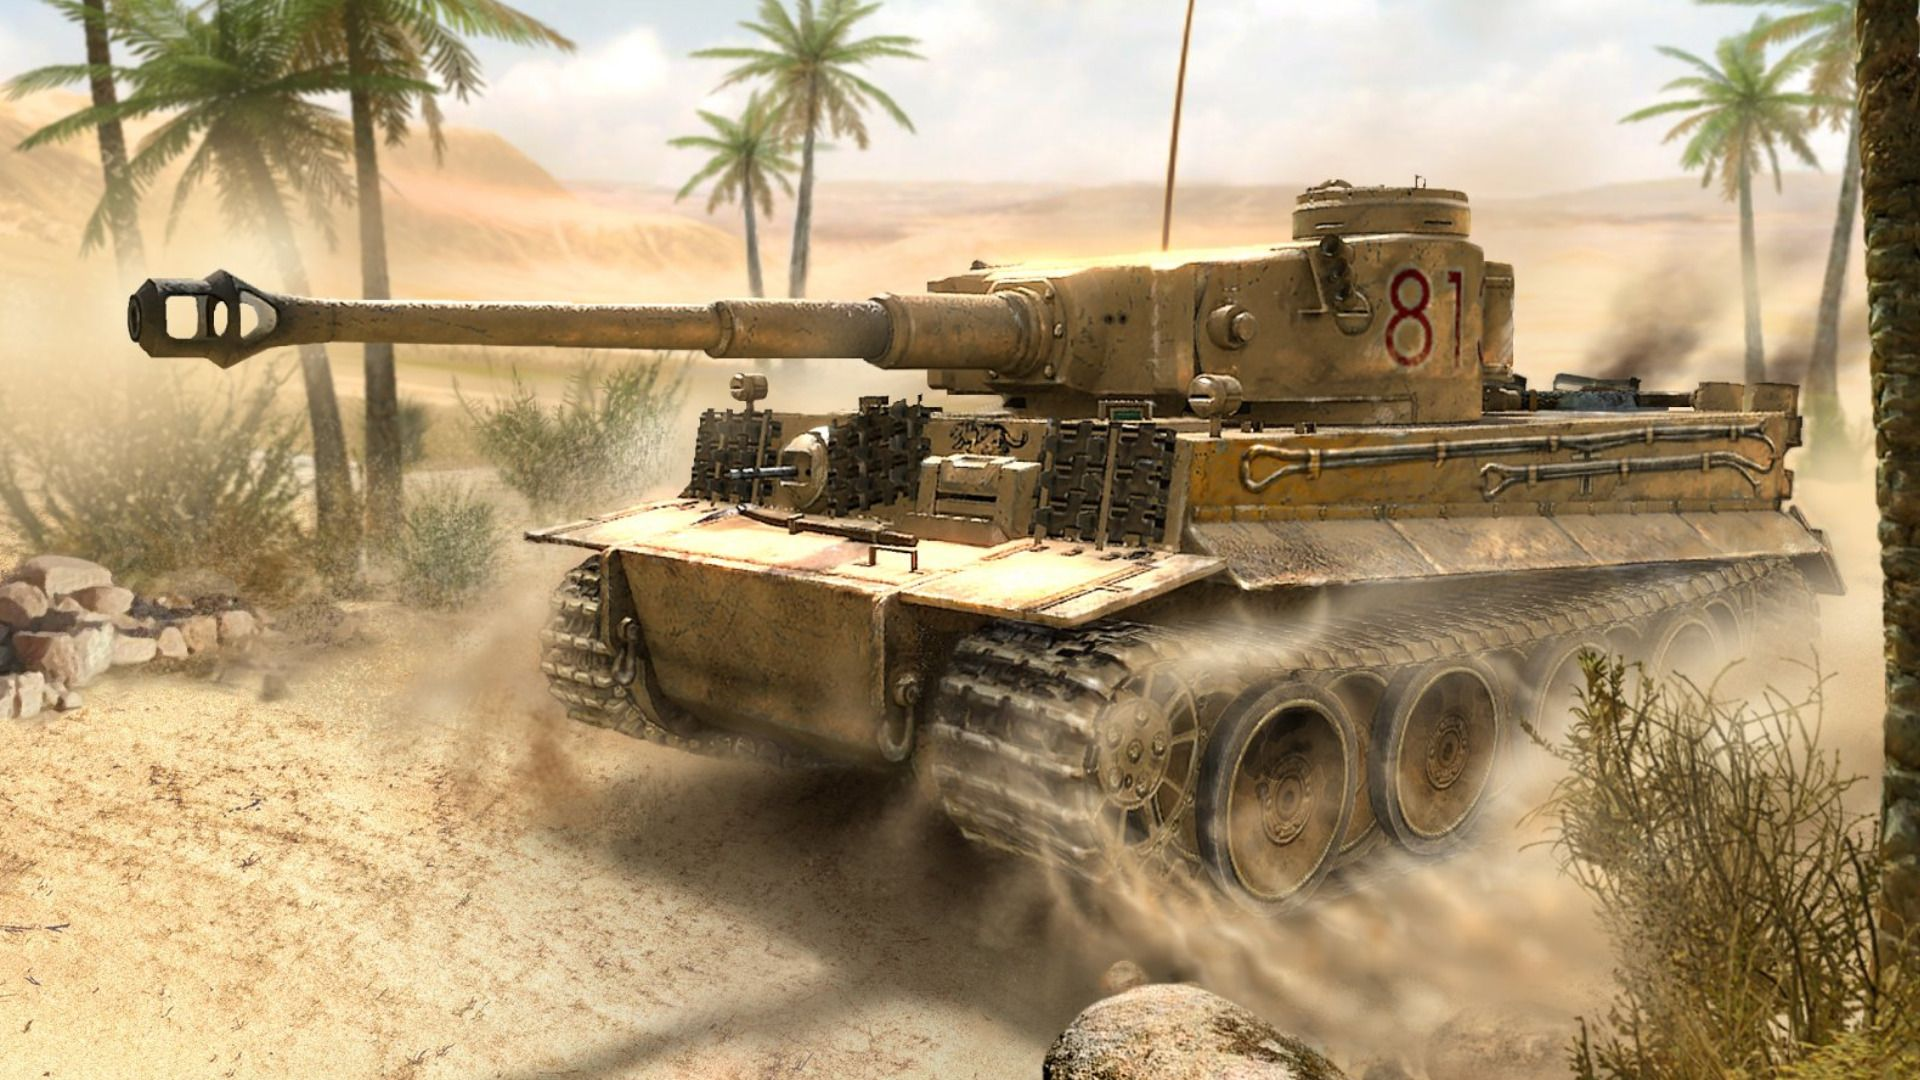 military tank ww2 tanks military vehicles wwii tigers armored vehicles north africa cover picture rolling thunder